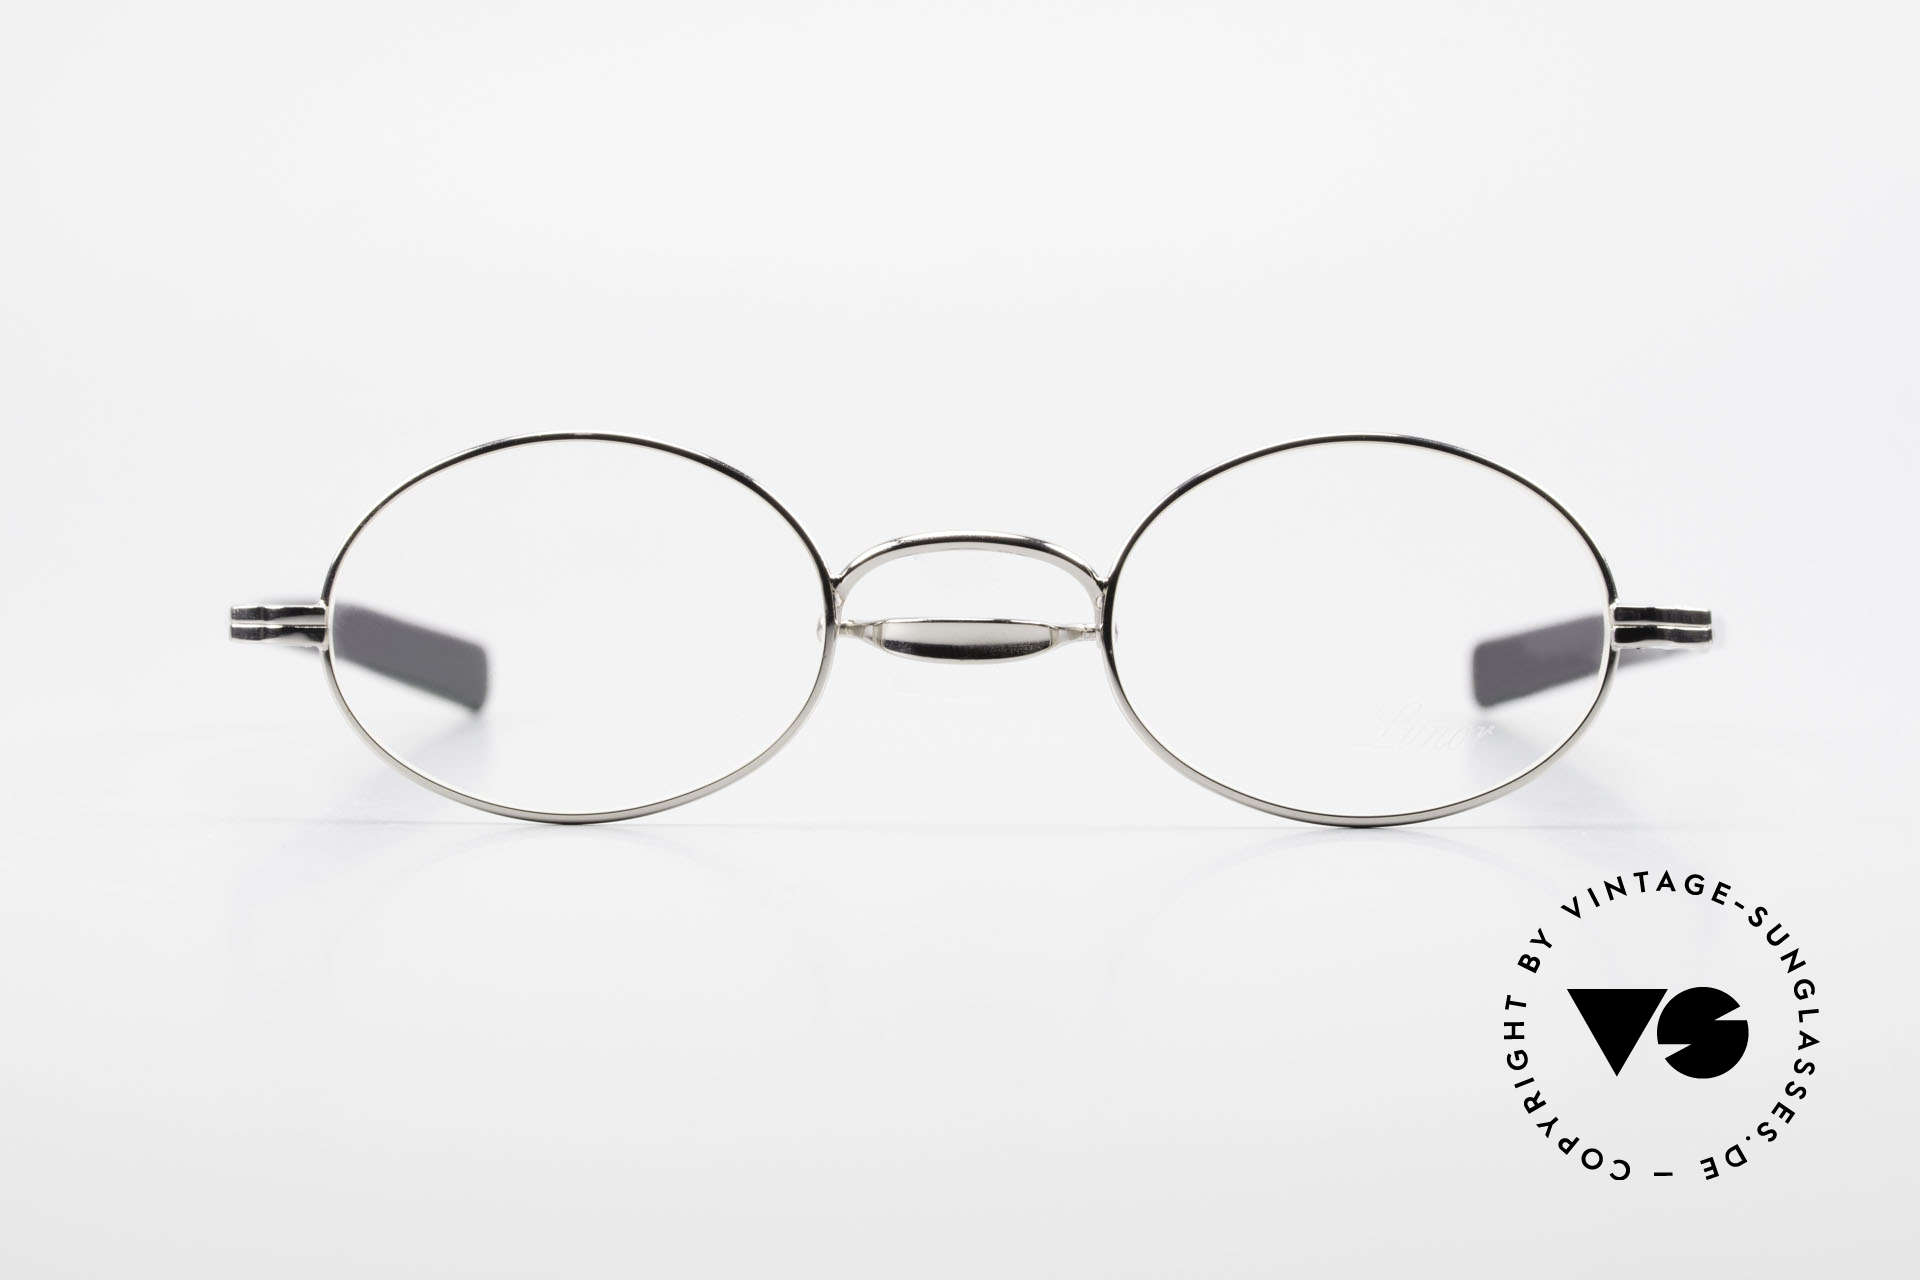 Lunor Swing A 33 Oval Swing Bridge Vintage Glasses, swing bridge = homage to the antique glasses from 1900, Made for Men and Women